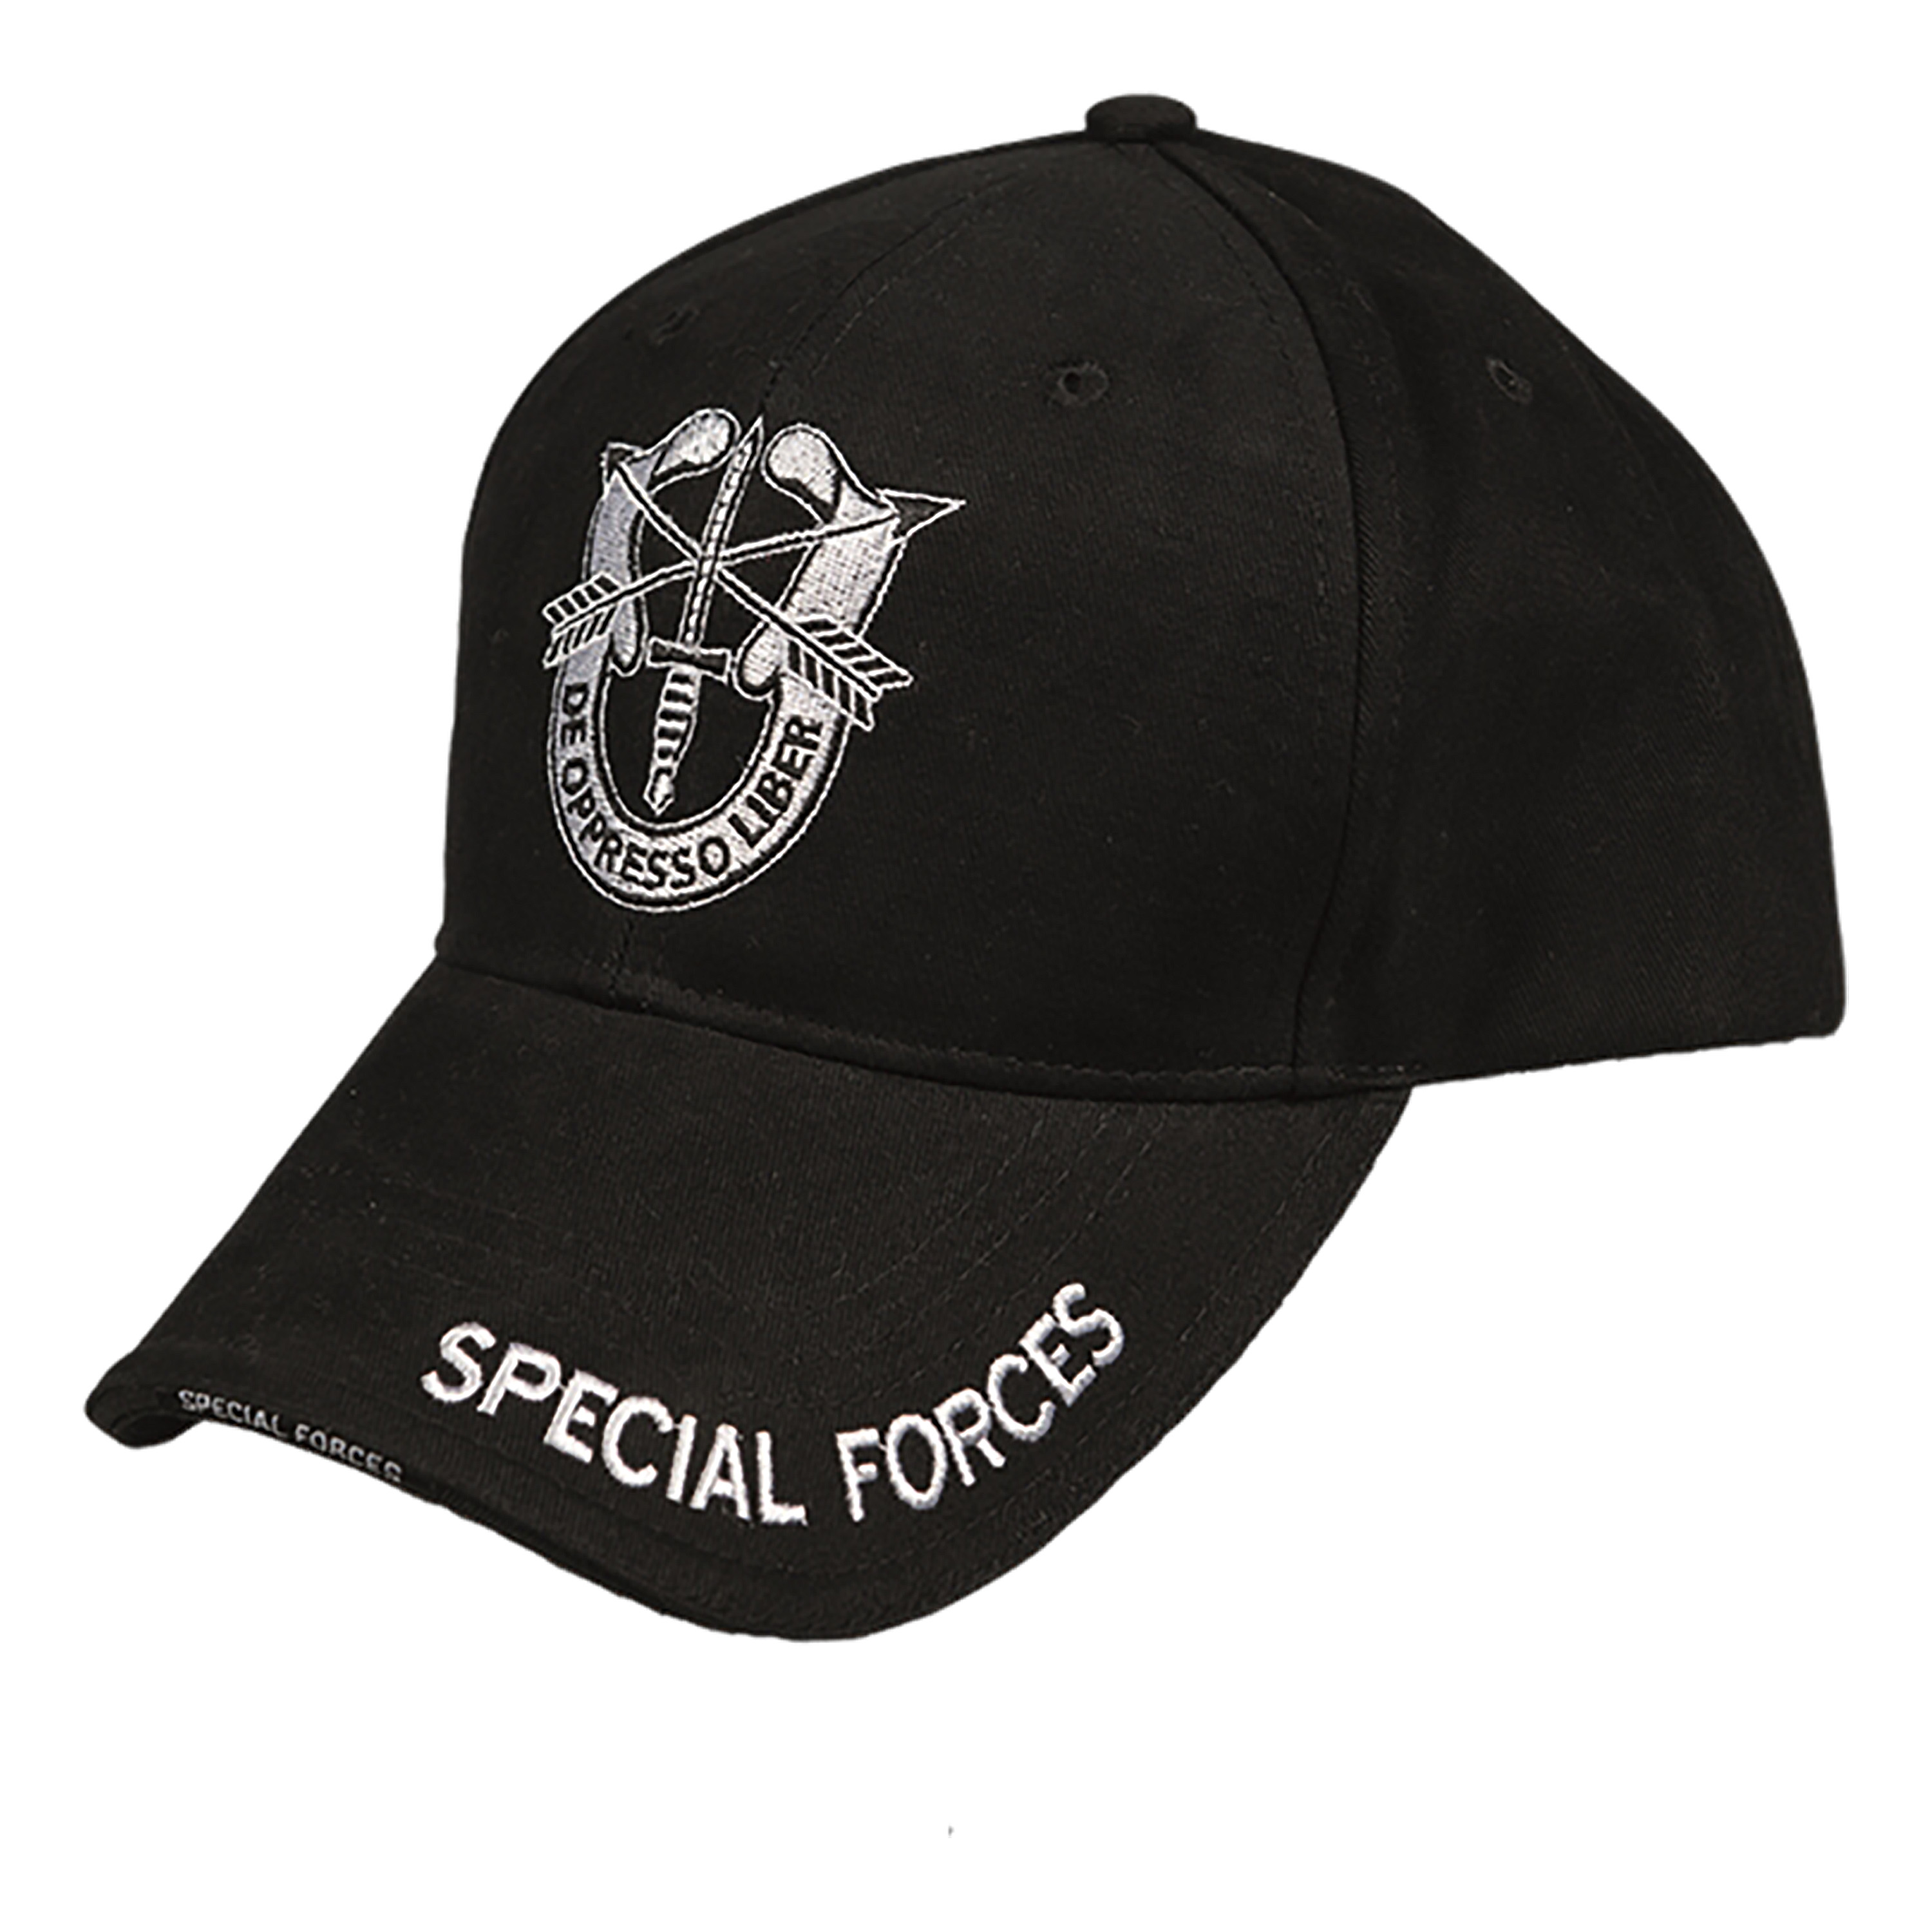 Baseball Cap SPECIAL FORCES schwarz